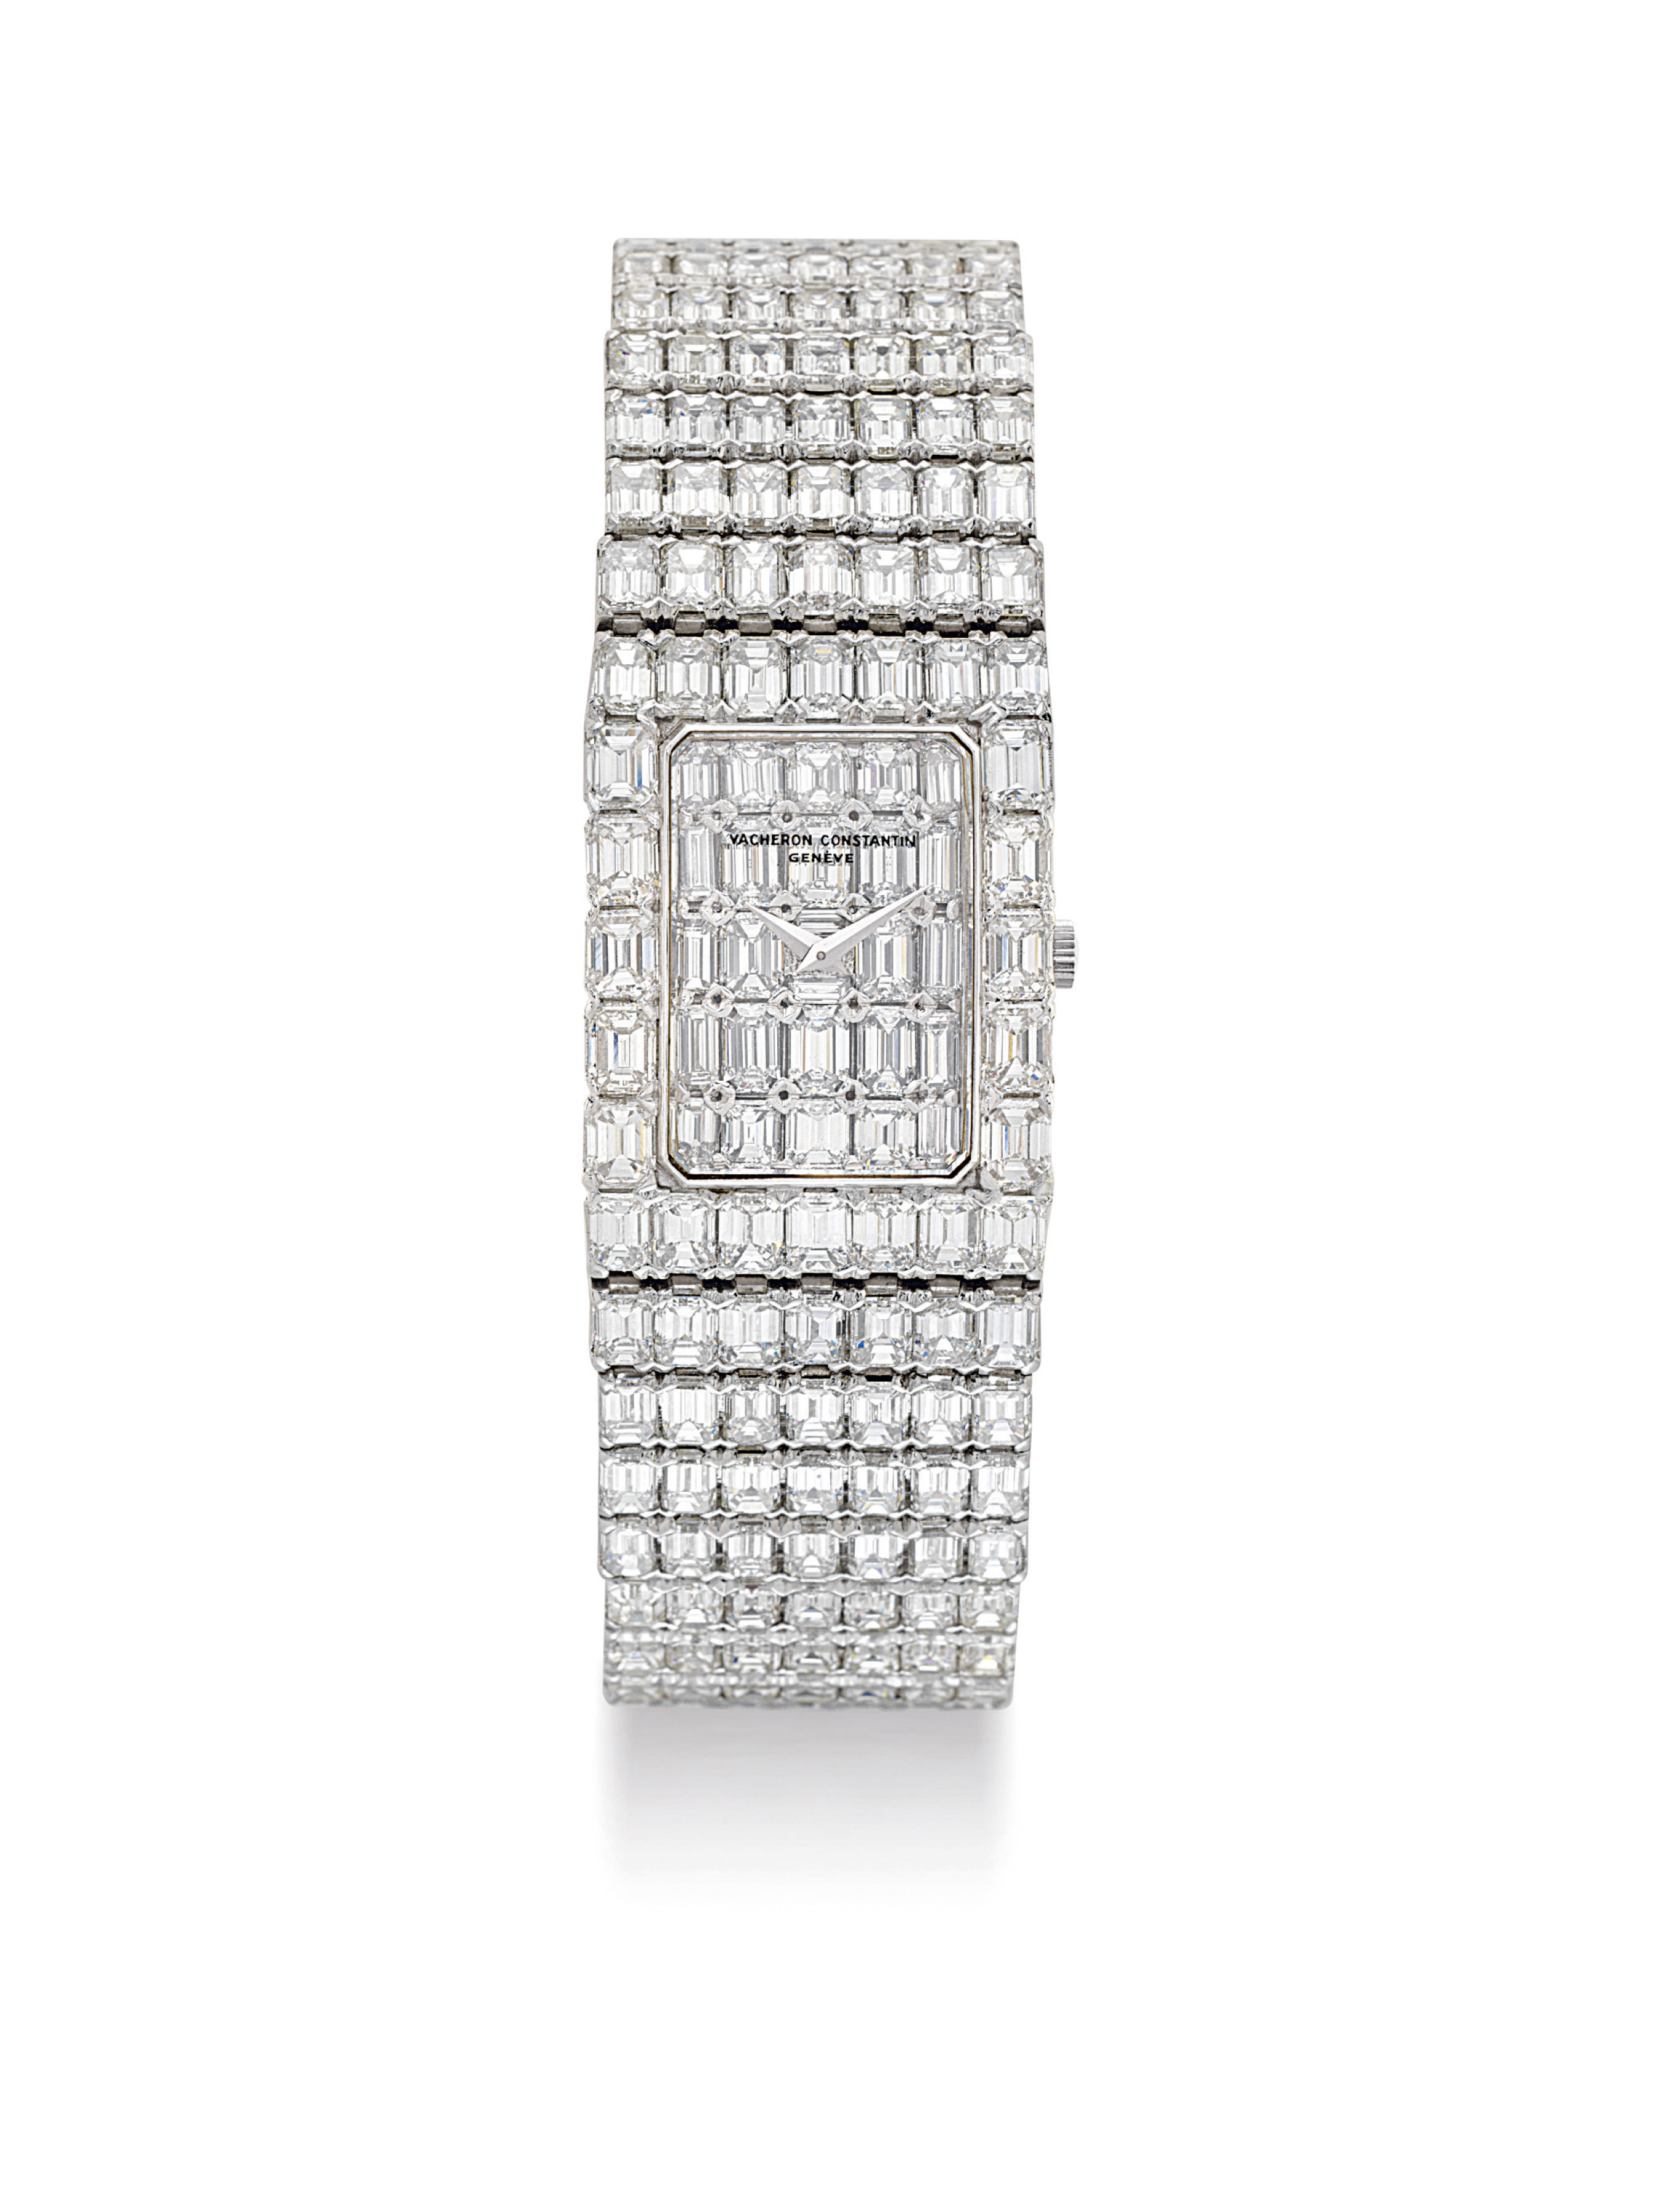 VACHERON CONSTANTIN. A SUPERB AND MAGNIFICENT 18K WHITE GOLD AND DIAMOND-SET RECTANGULAR BRACELET WATCH